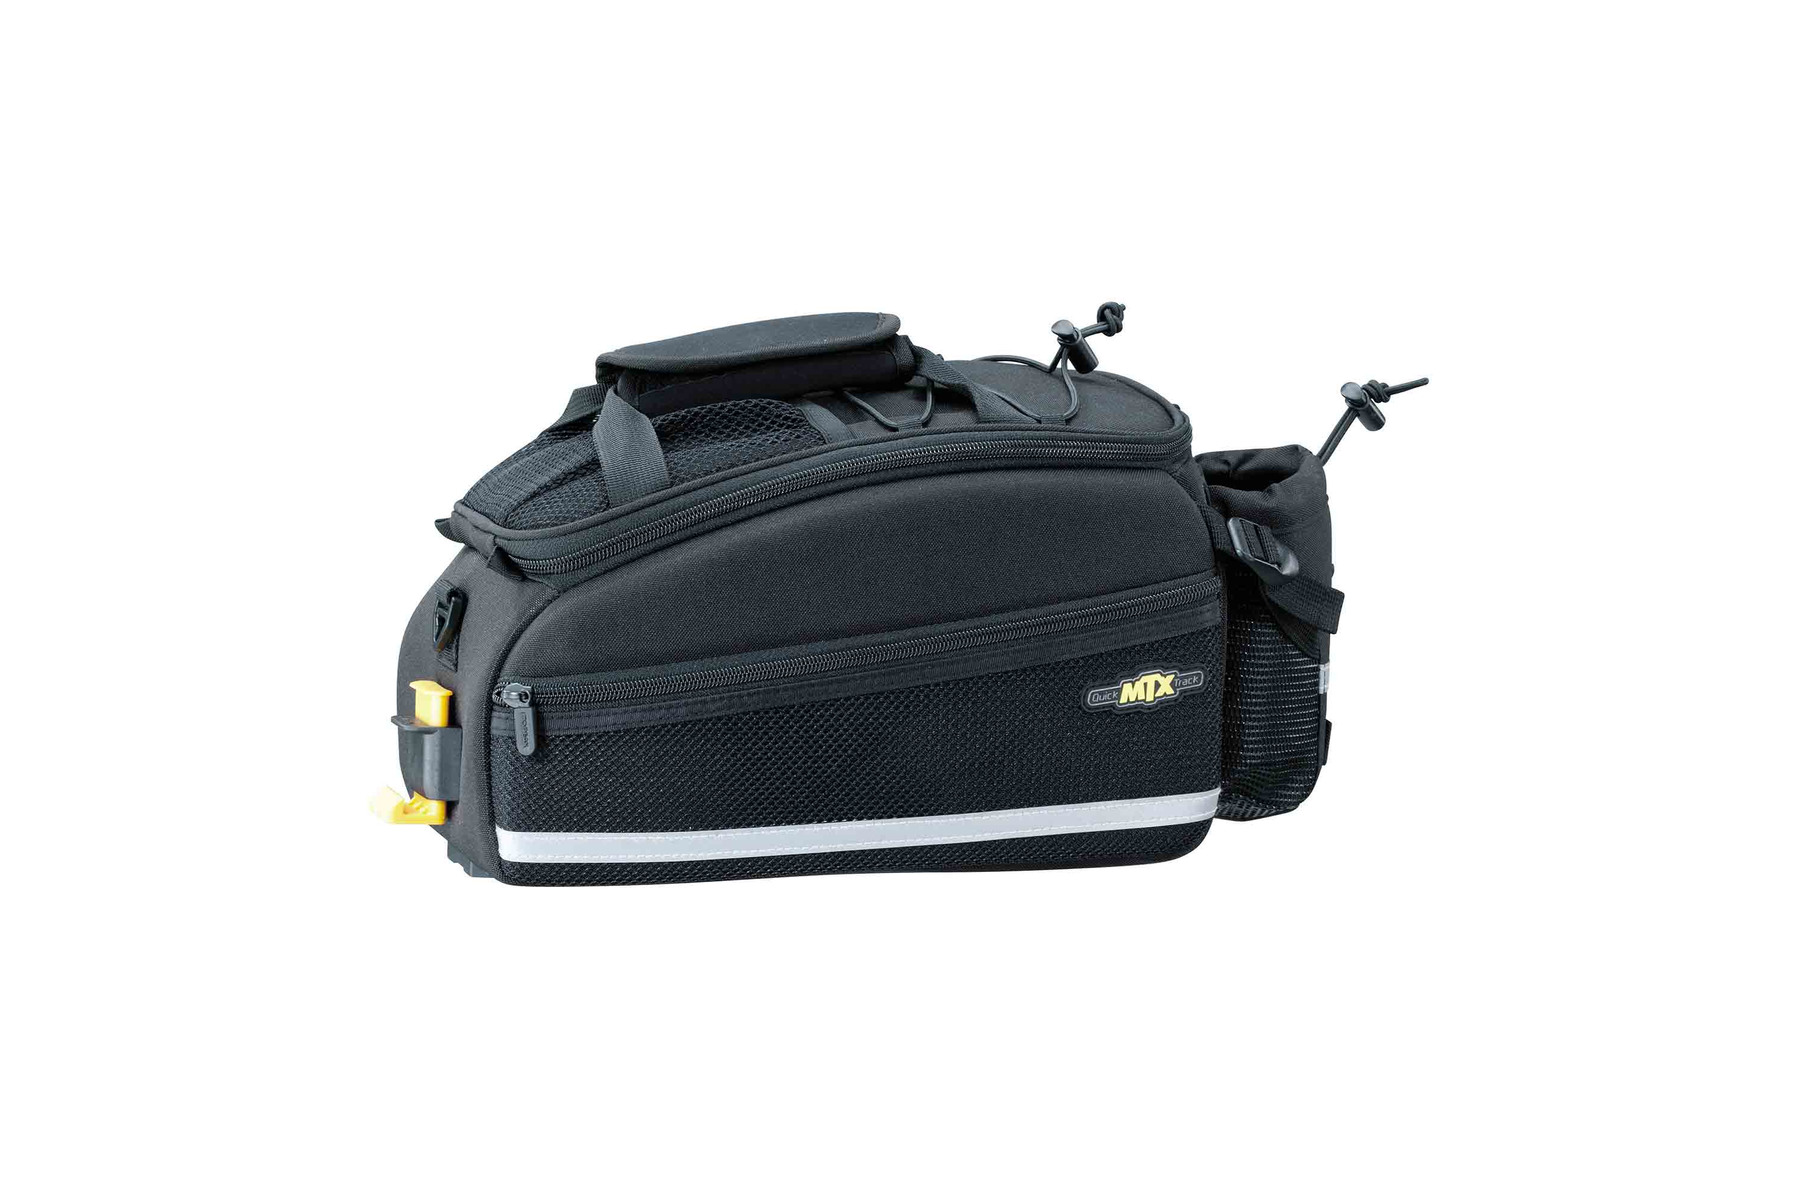 MTX Trunk Bag EX sacoche de porte-bagages